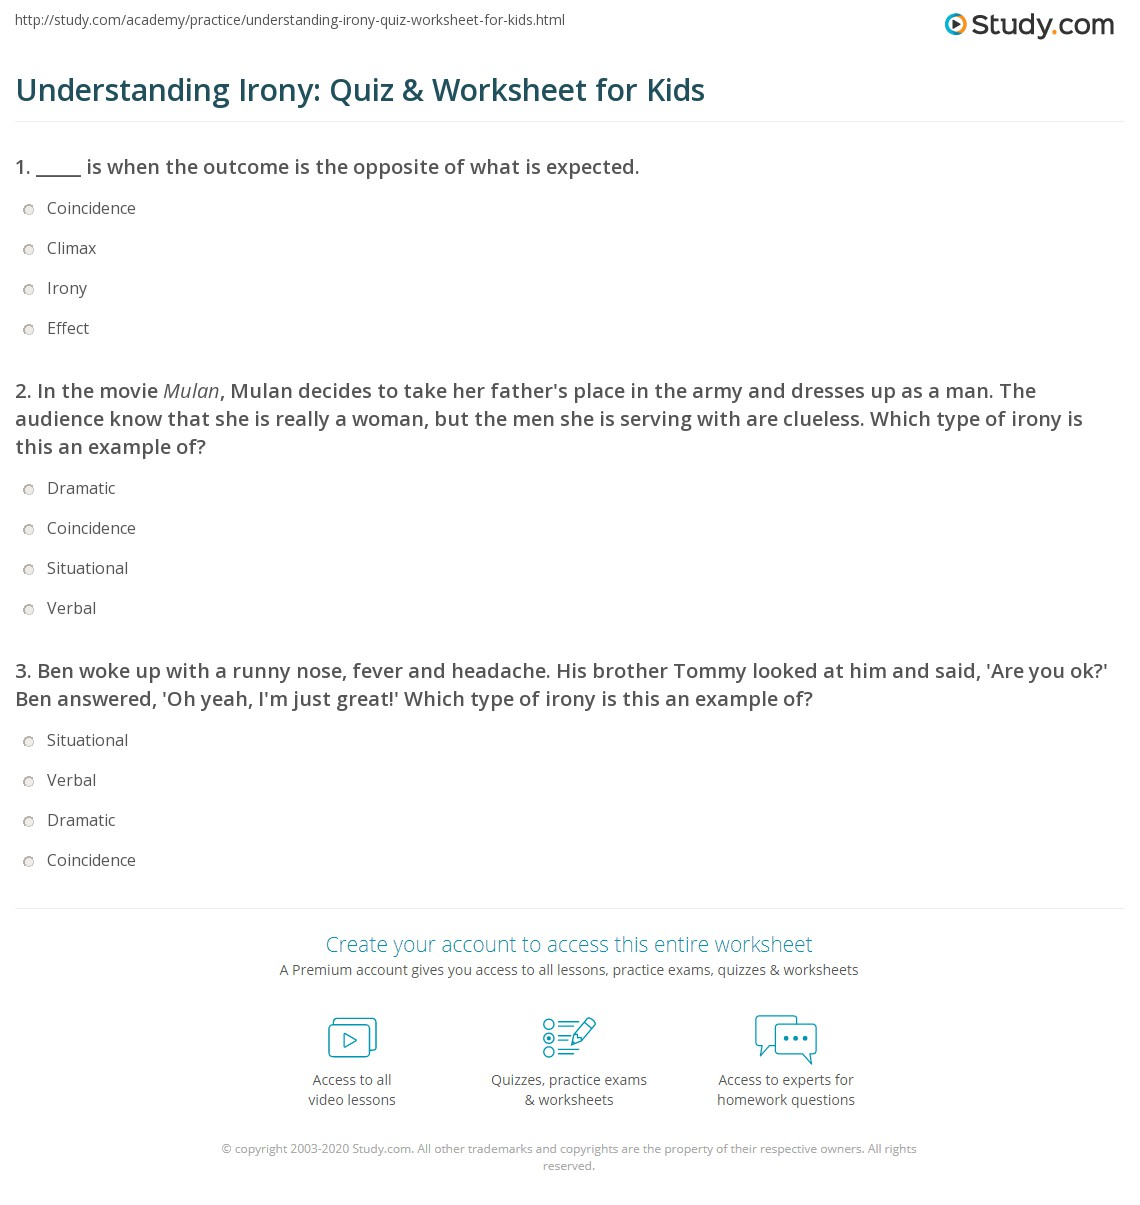 Worksheets Mulan Worksheet understanding irony quiz worksheet for kids study com in the movie mulan decides to take her fathers place army and dresses up as a man audience know that she is reall